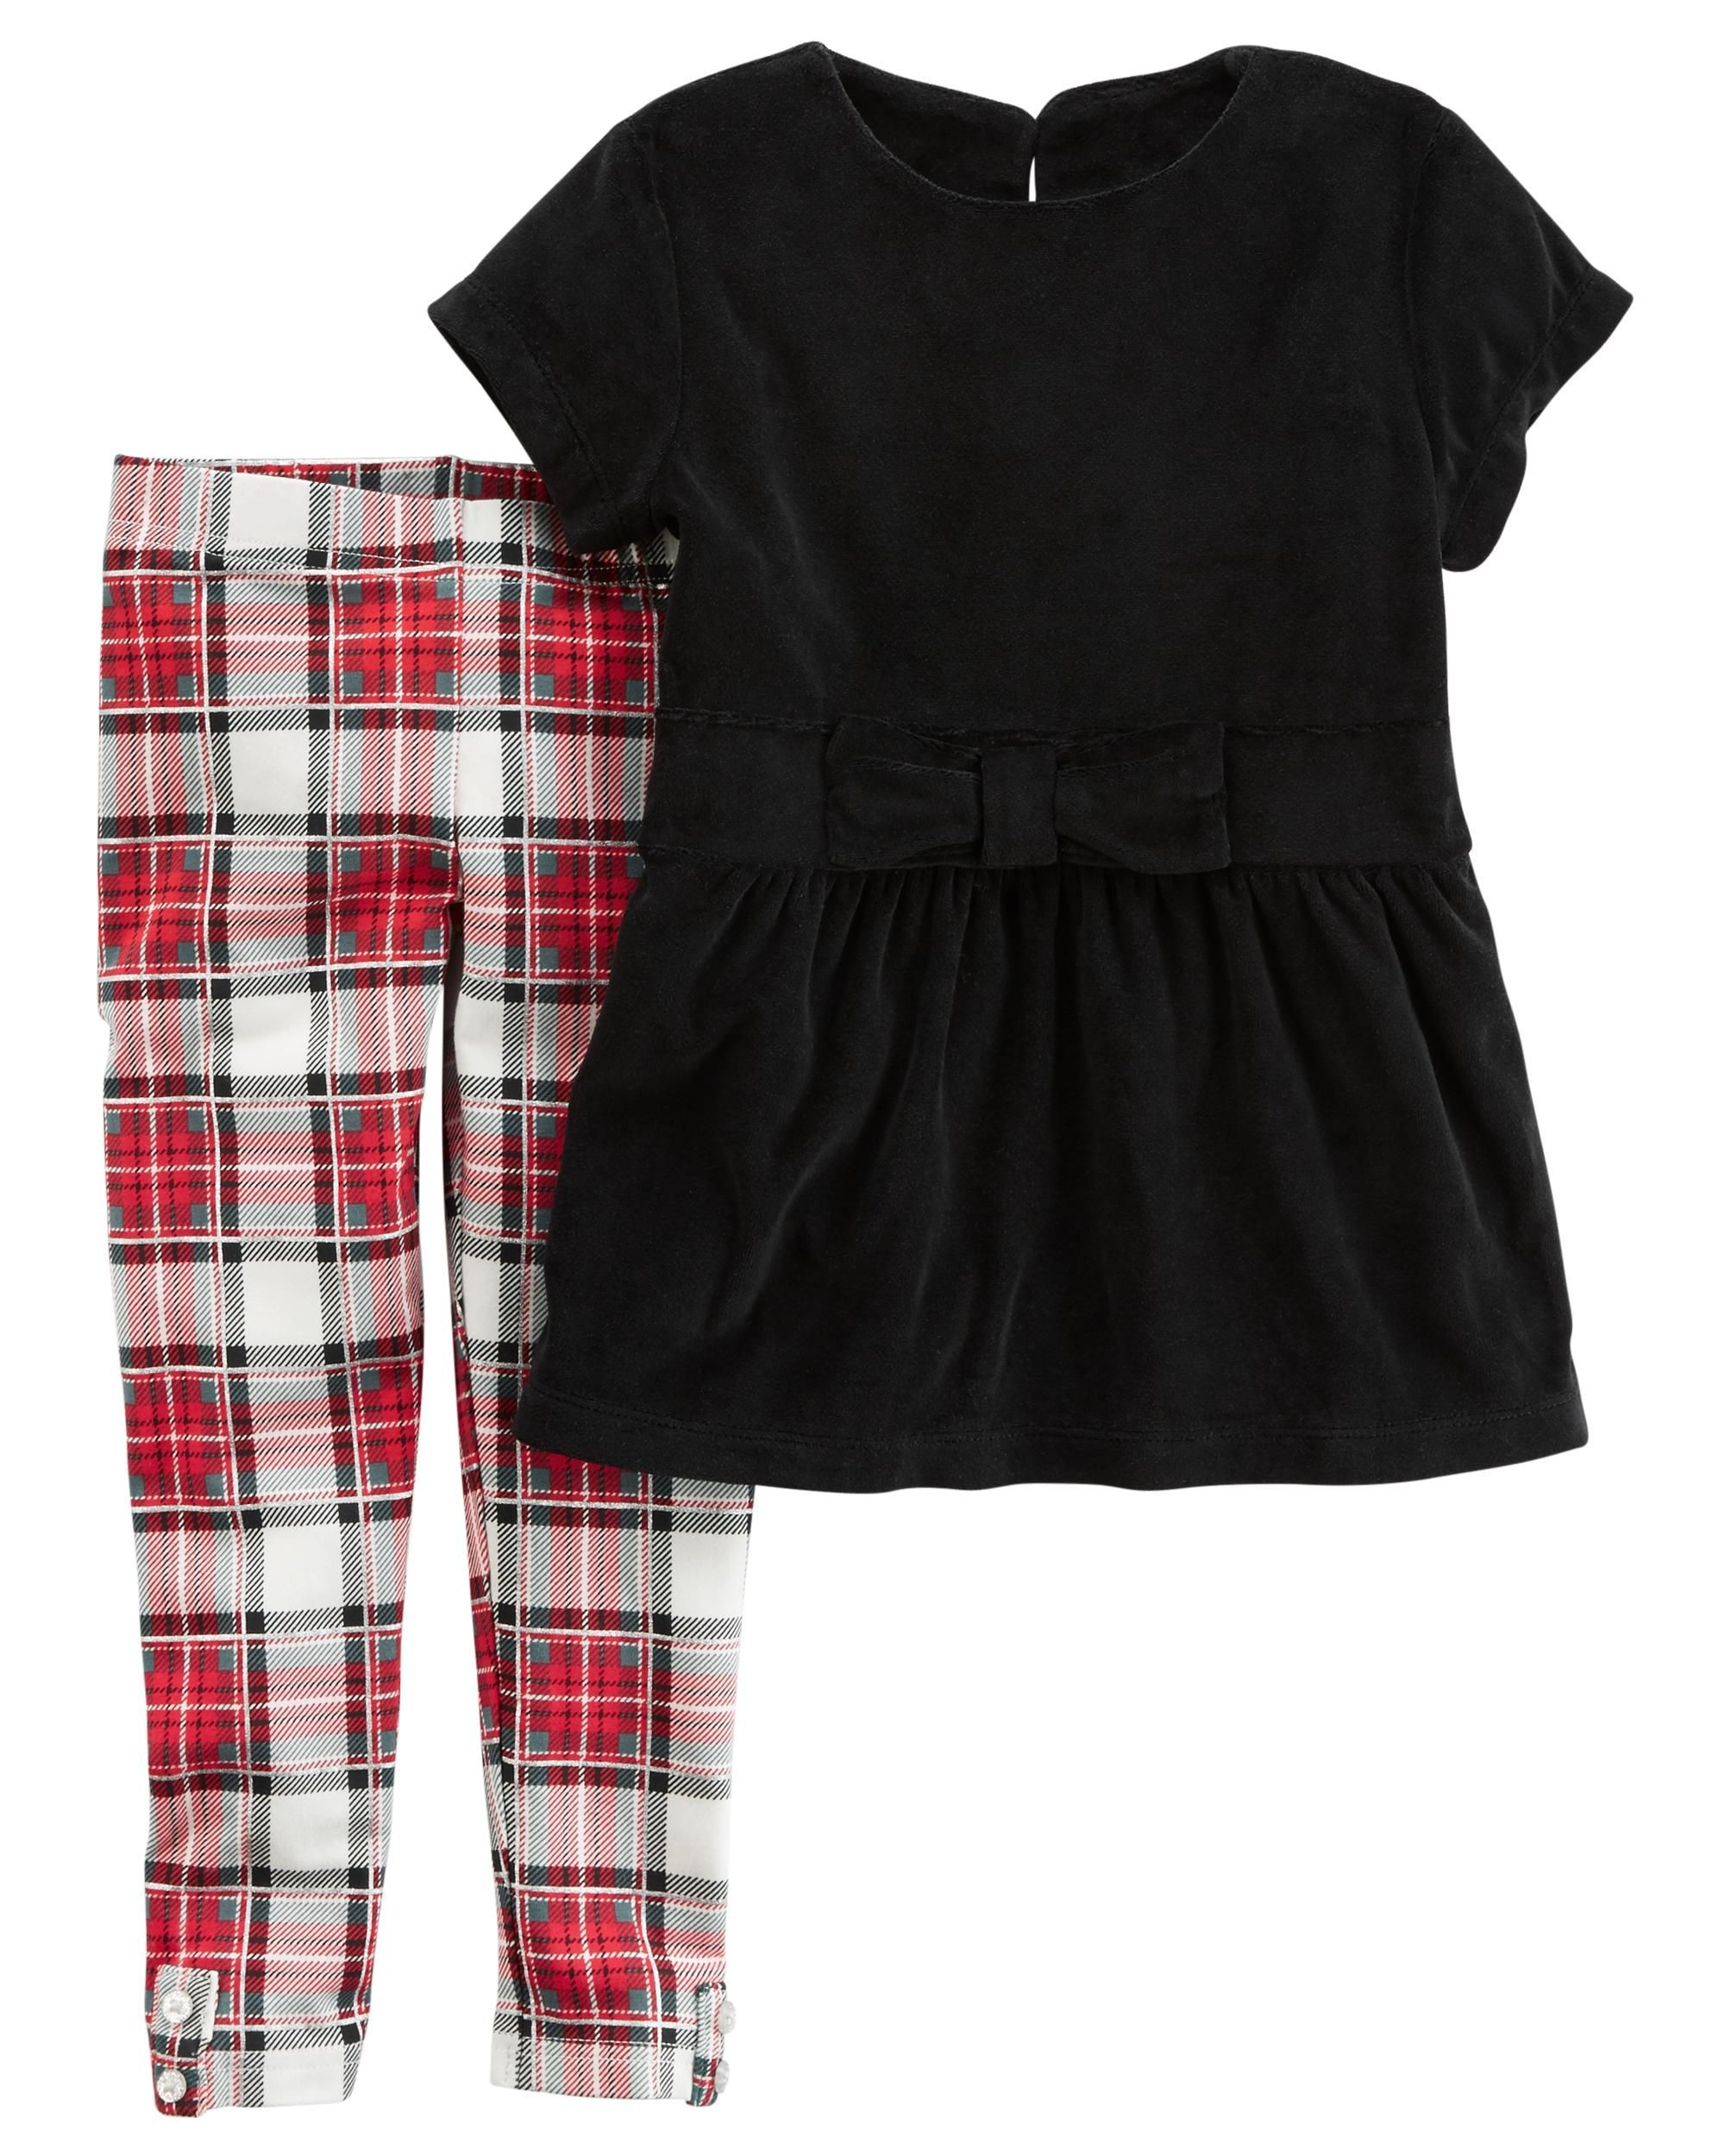 0d6d9412ce Featuring a velour top with a sweet bow detail and plaid stretch leggings,  this cute and cozy combo is a great holiday outfit!